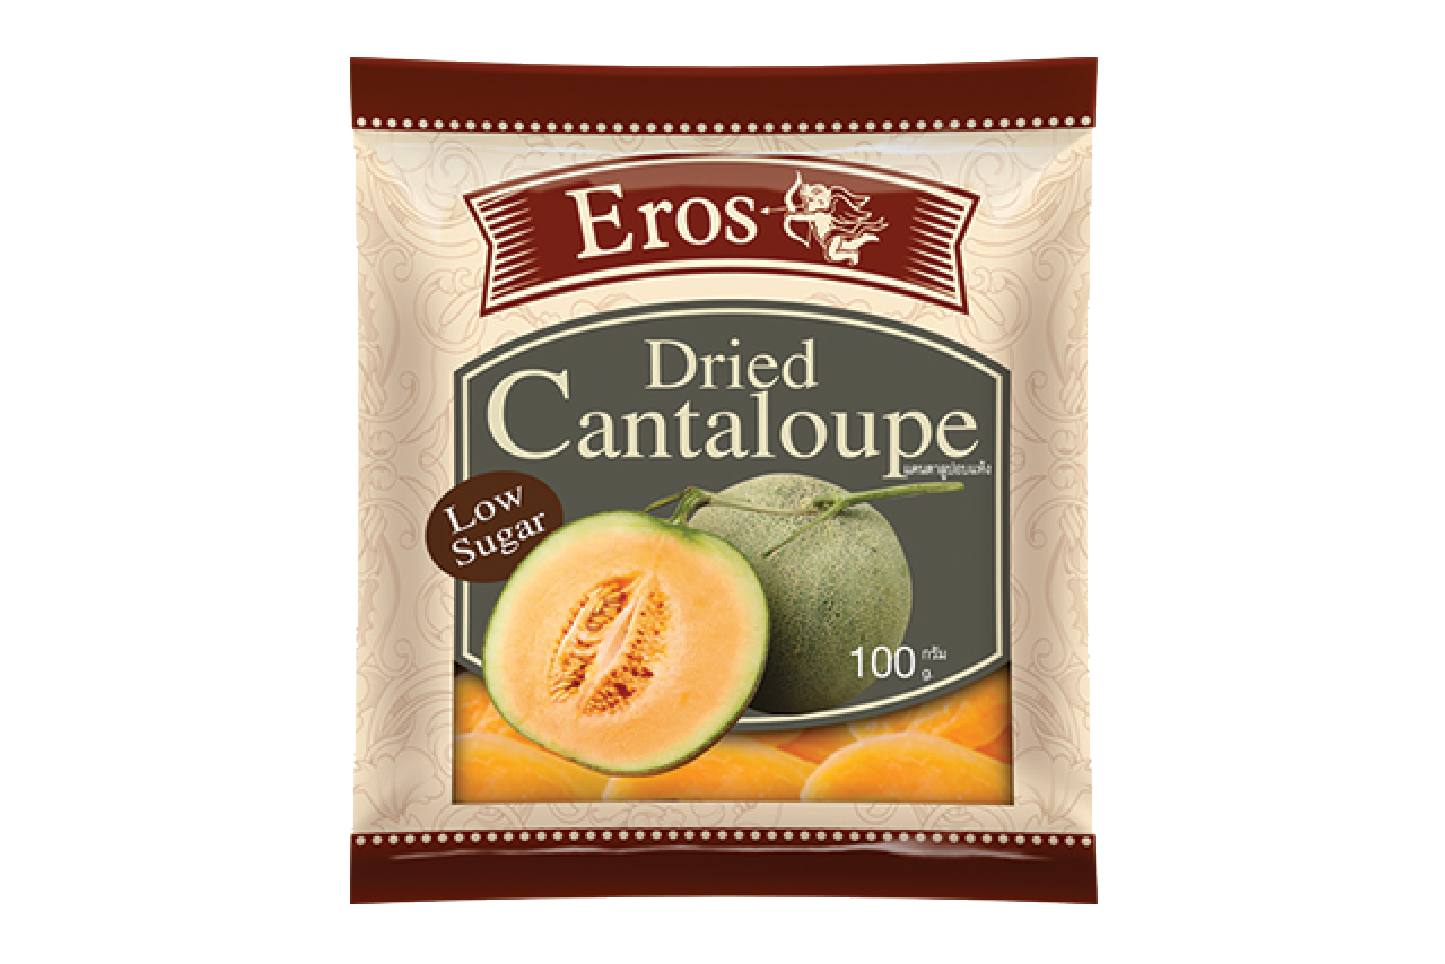 EROS Dried Cantaloupe